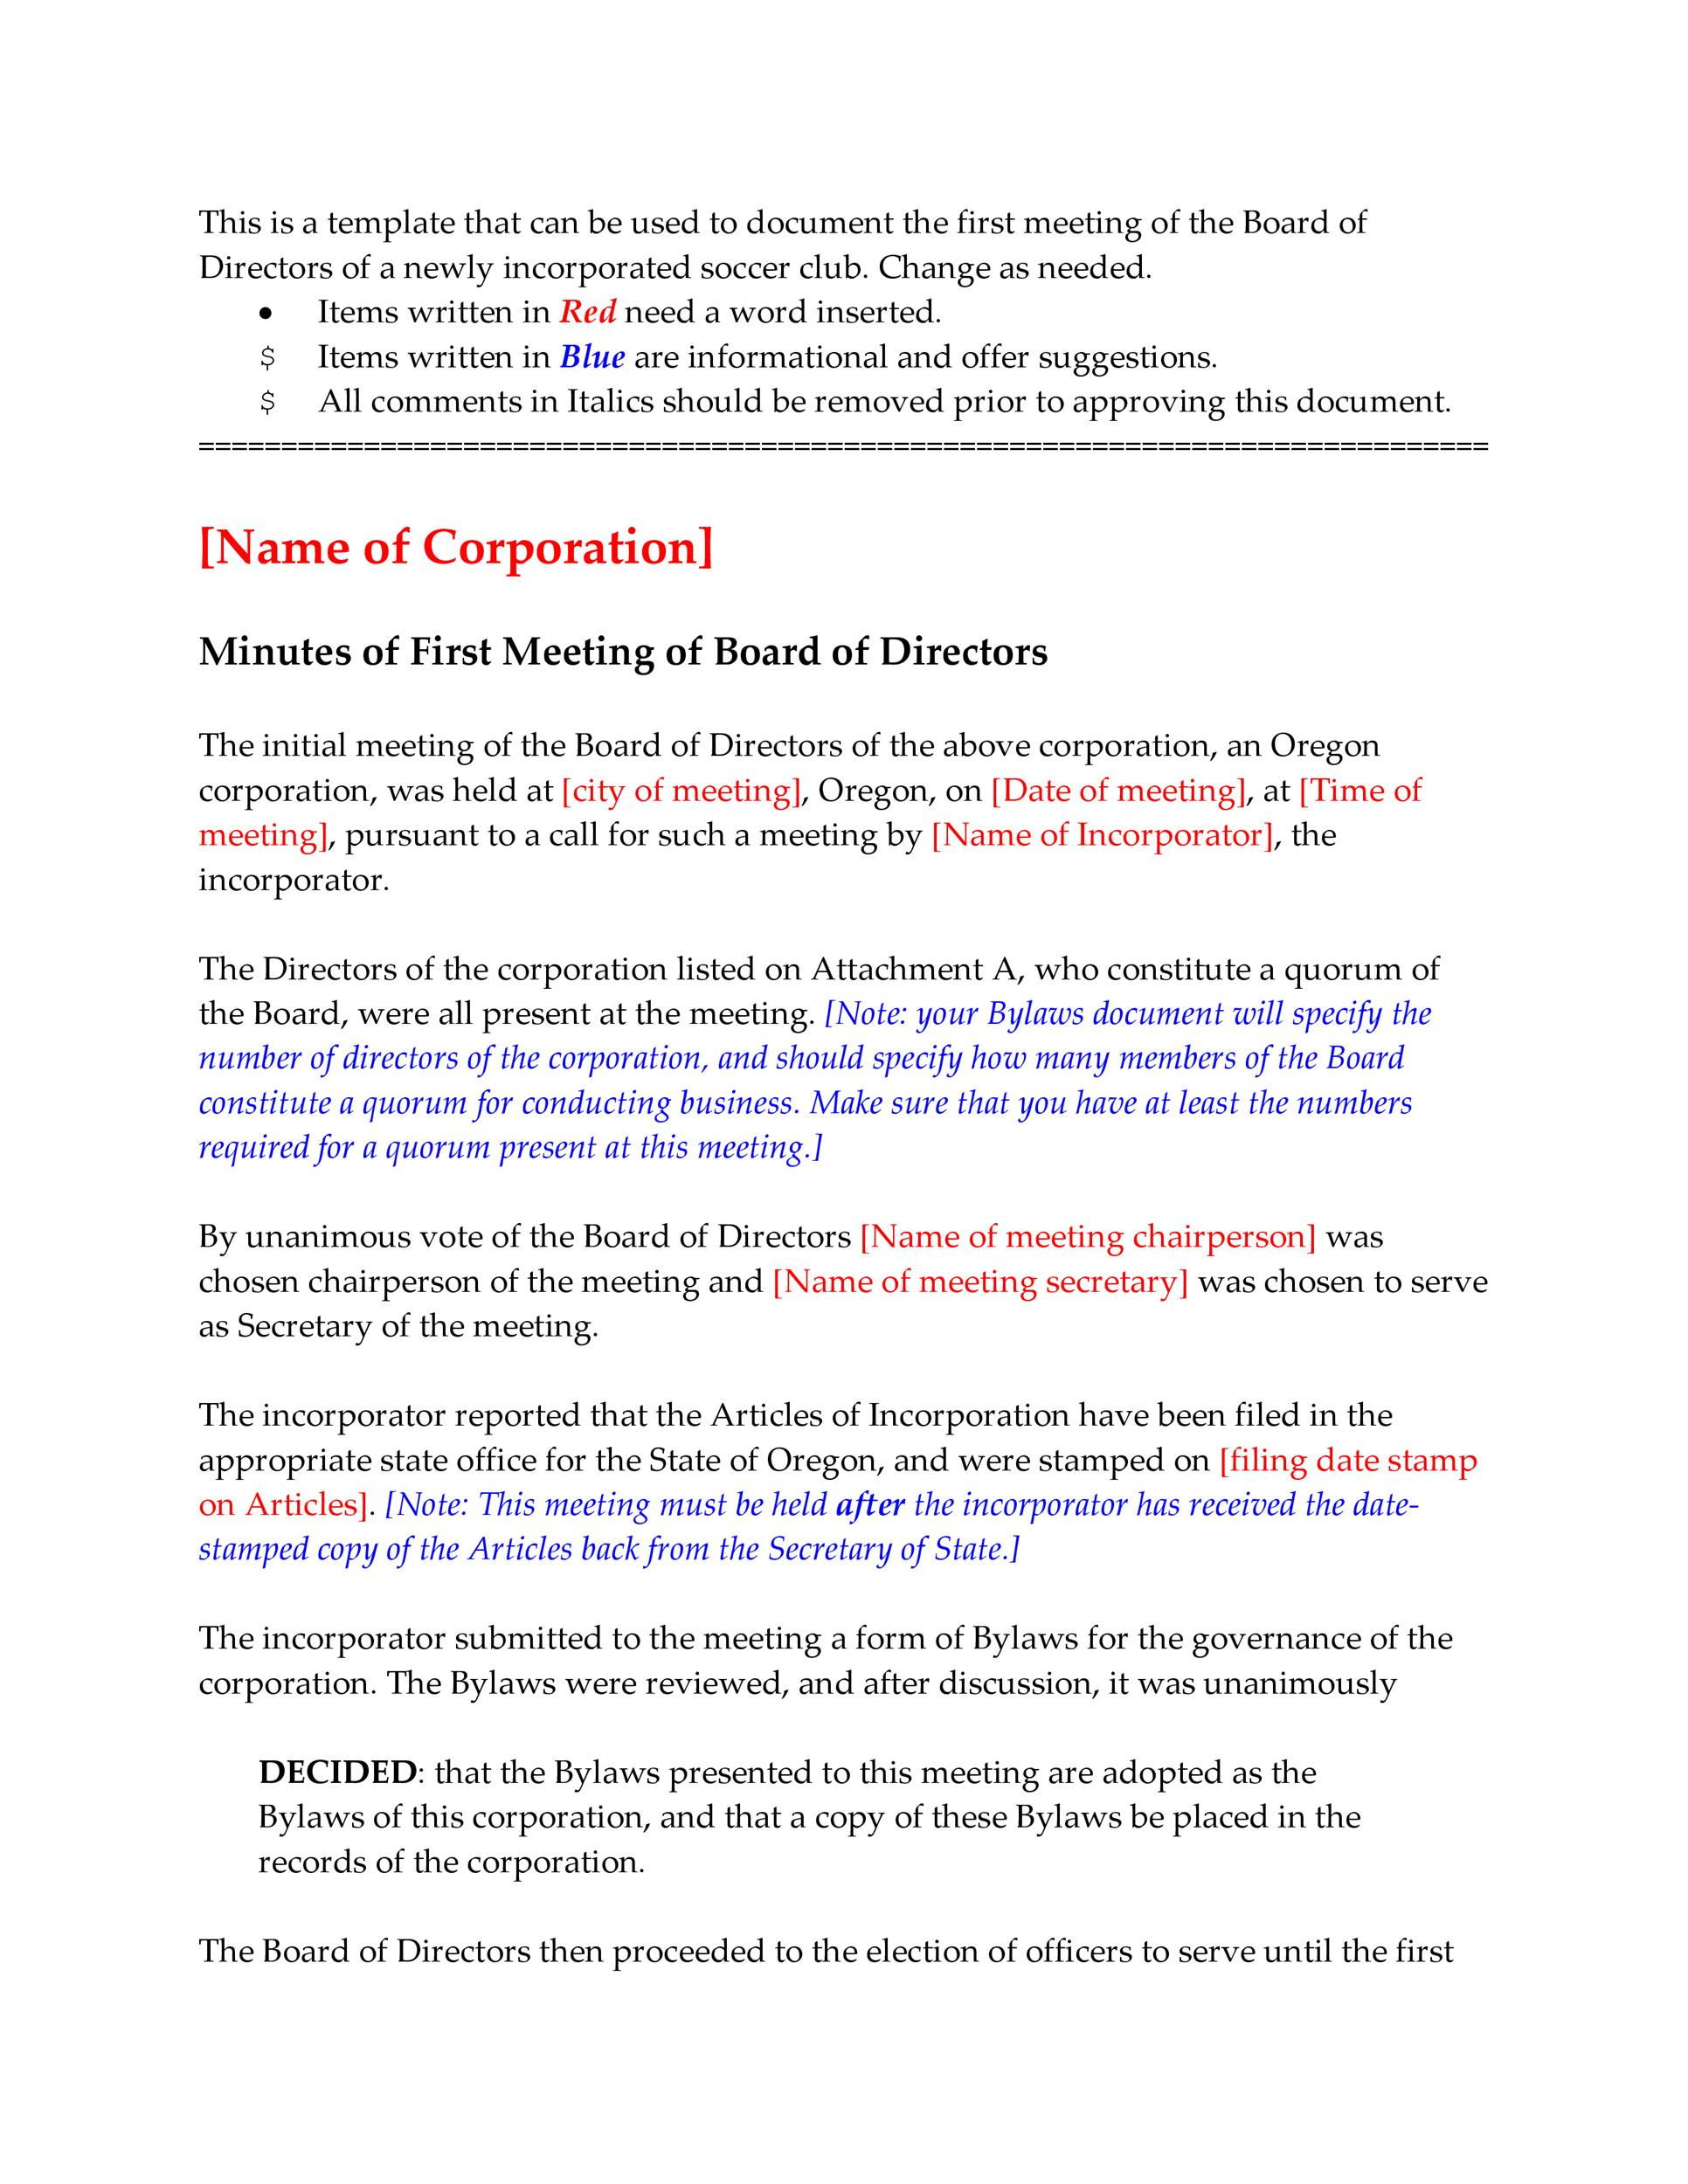 33 Professional Corporate Minutes Templates (Word/PDF) ᐅ ...